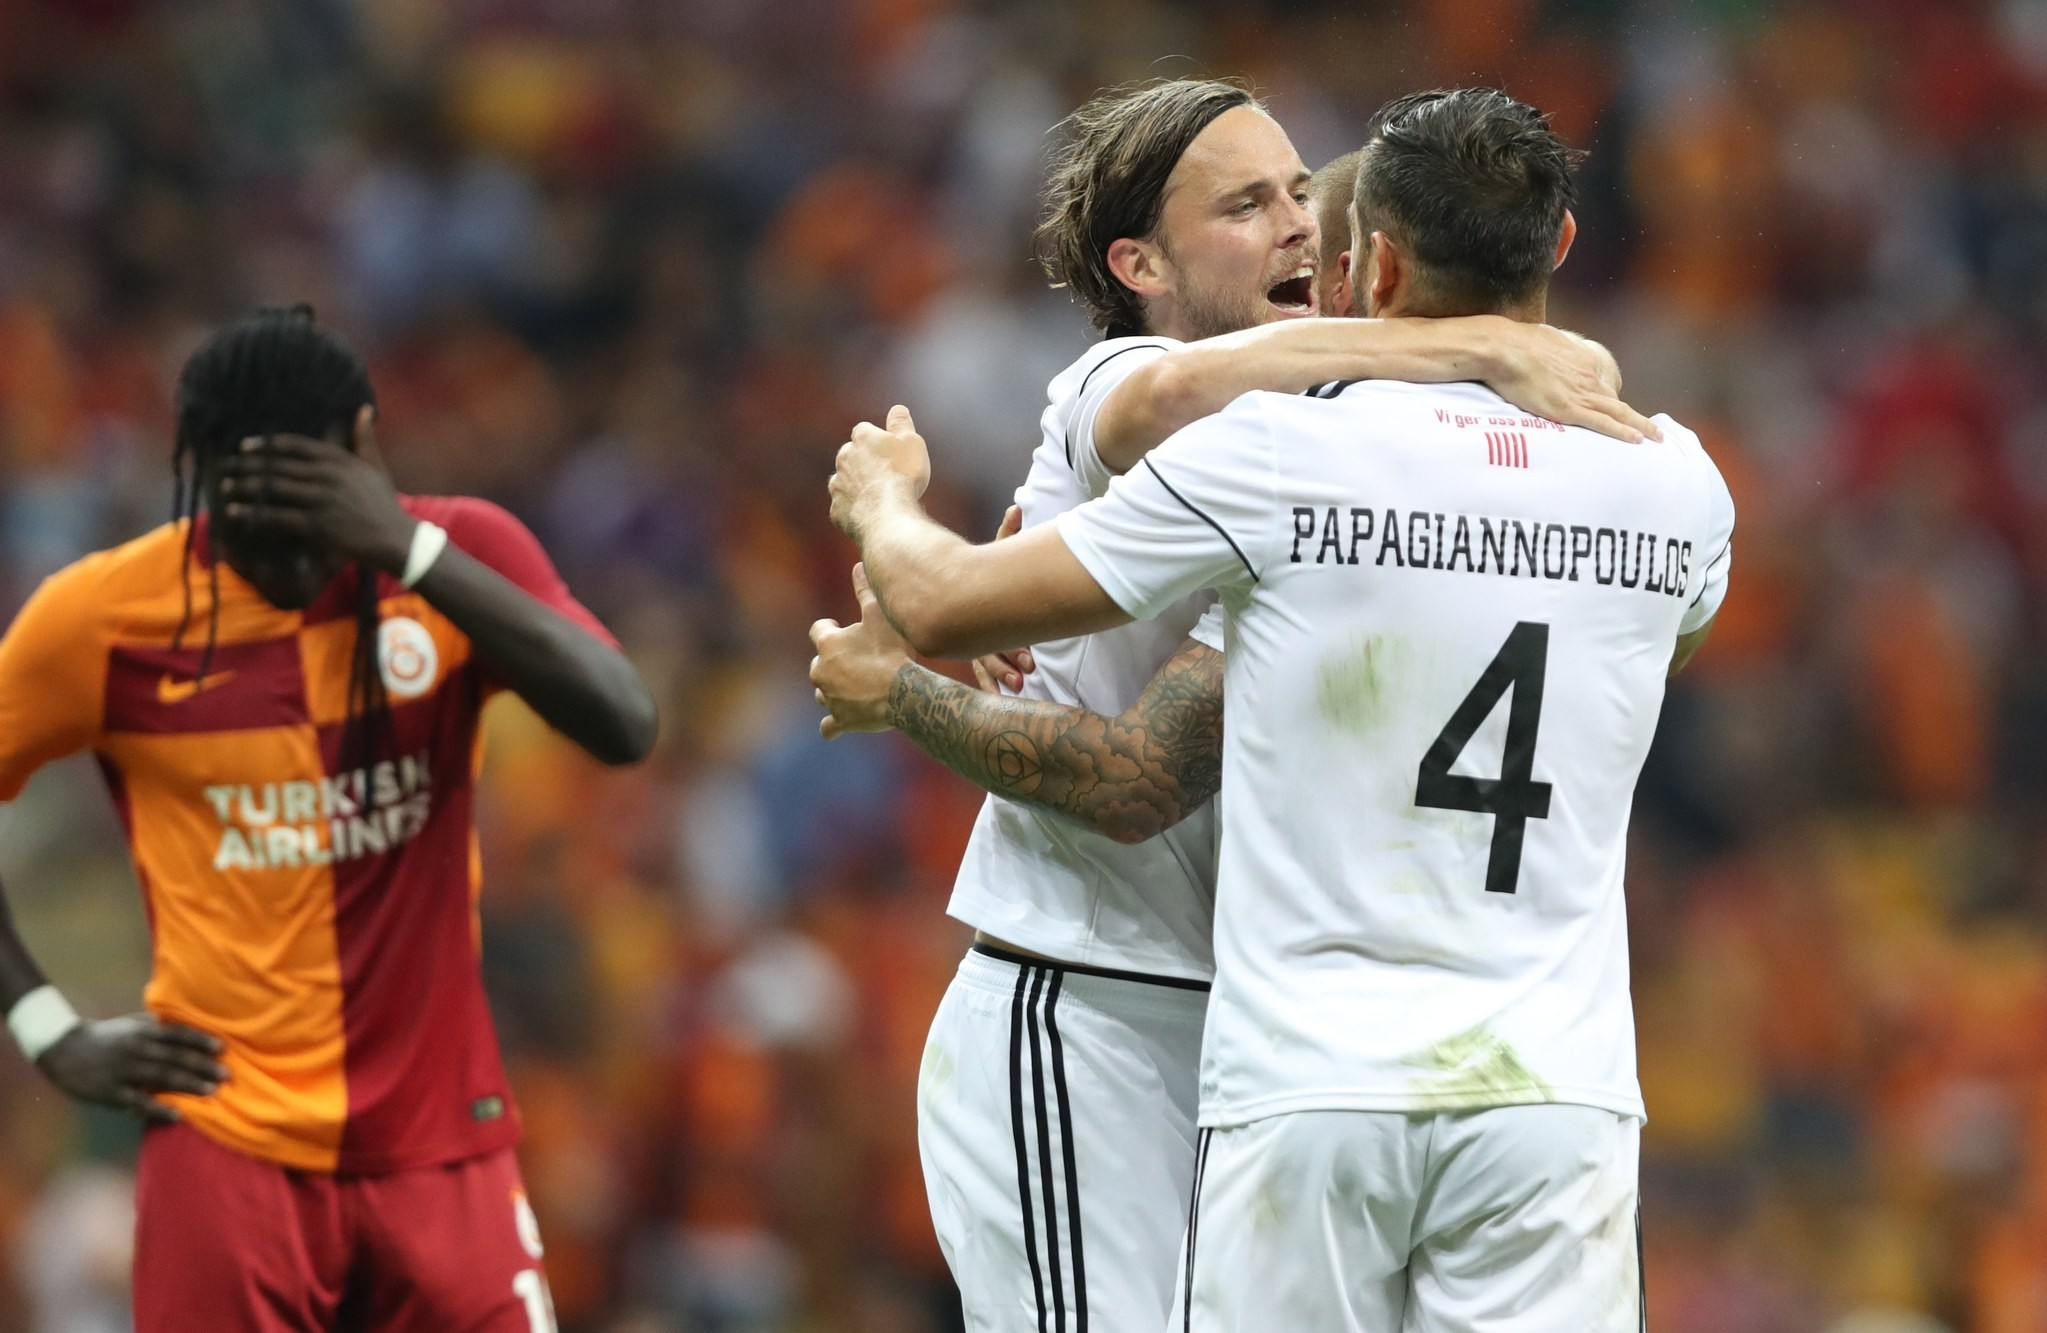 Ostersund players celebrate after the UEFA Europa League second qualifying round second leg match between Galatasaray vs Ostersund in Istanbul, Turkey 20 July 2017. (EPA Photo)